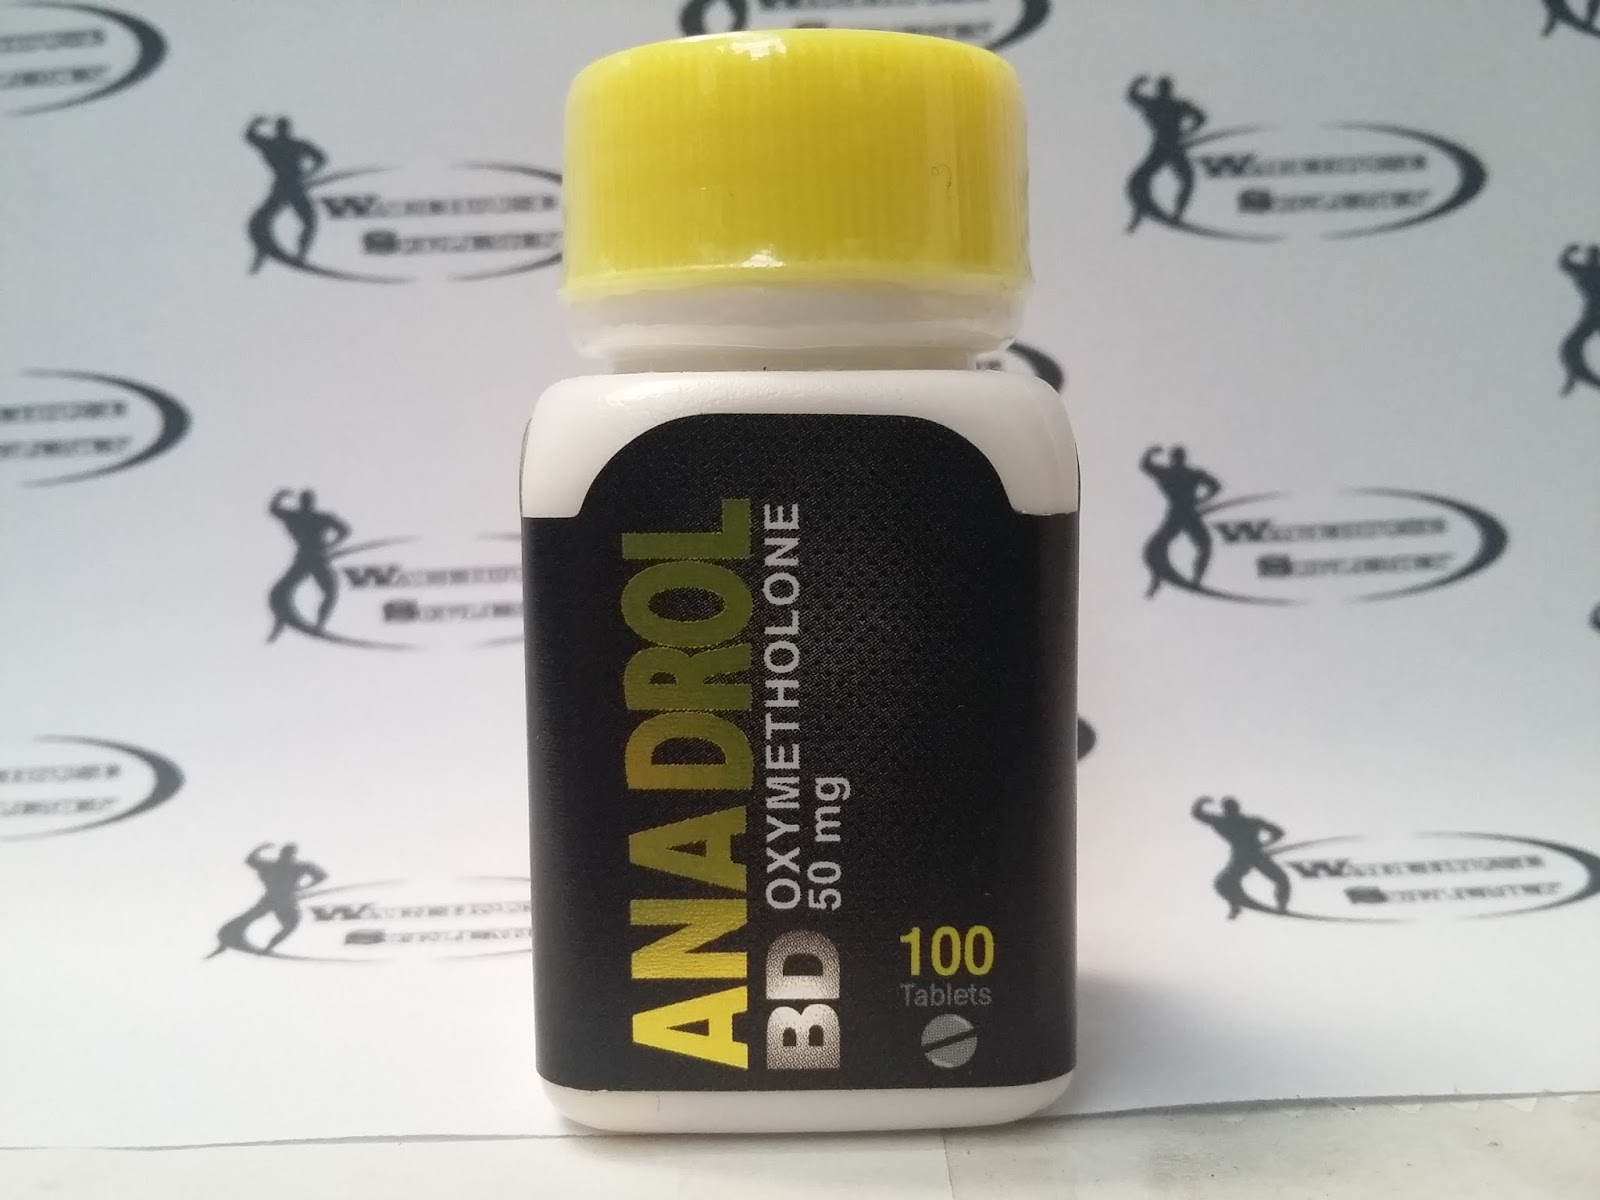 meditech stanozolol 10mg review